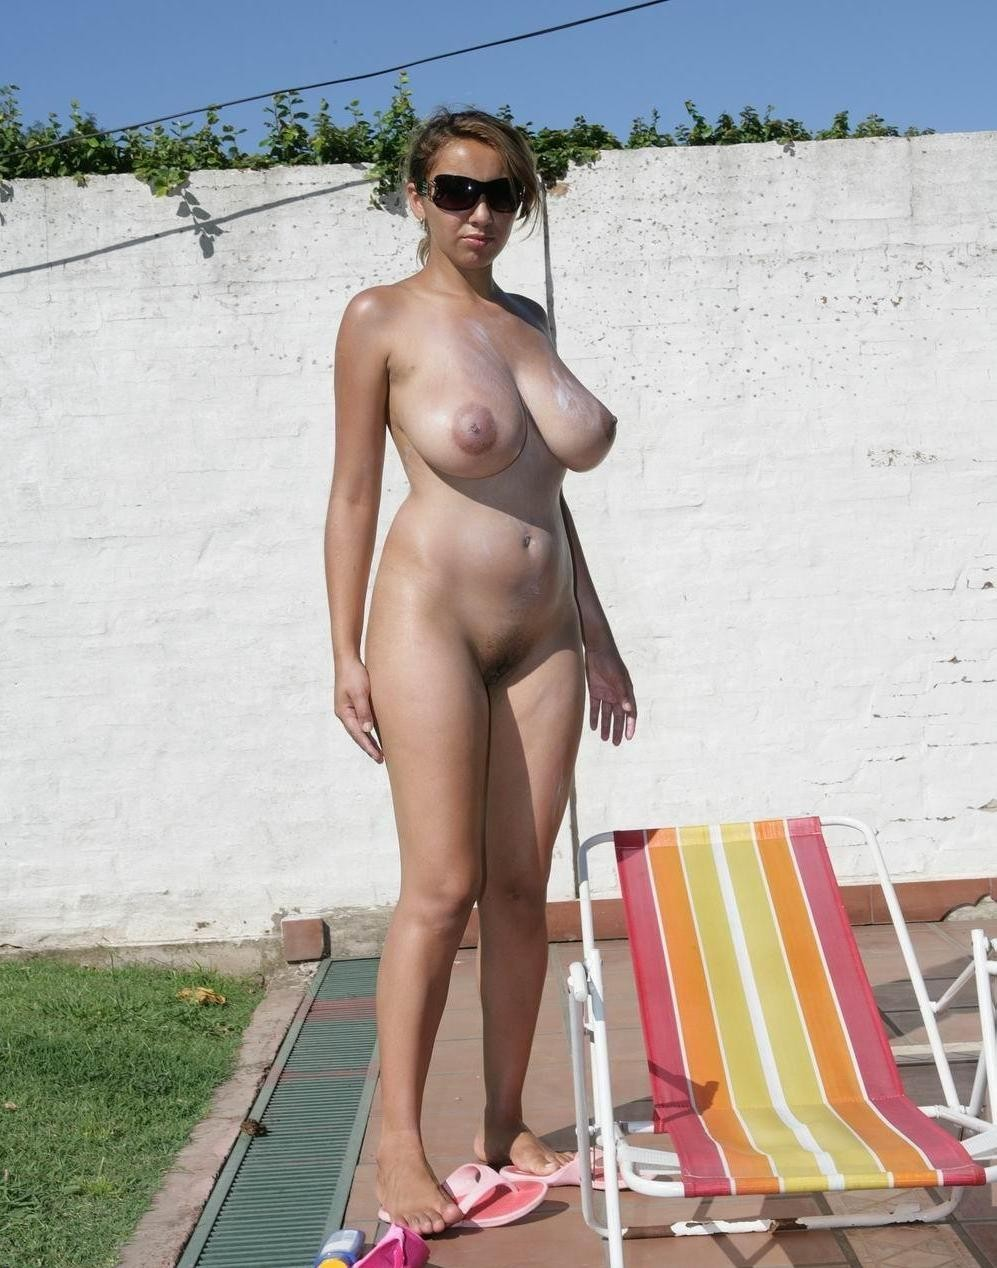 Sexy amateur milf and homemade mature nudist pictures and videos.